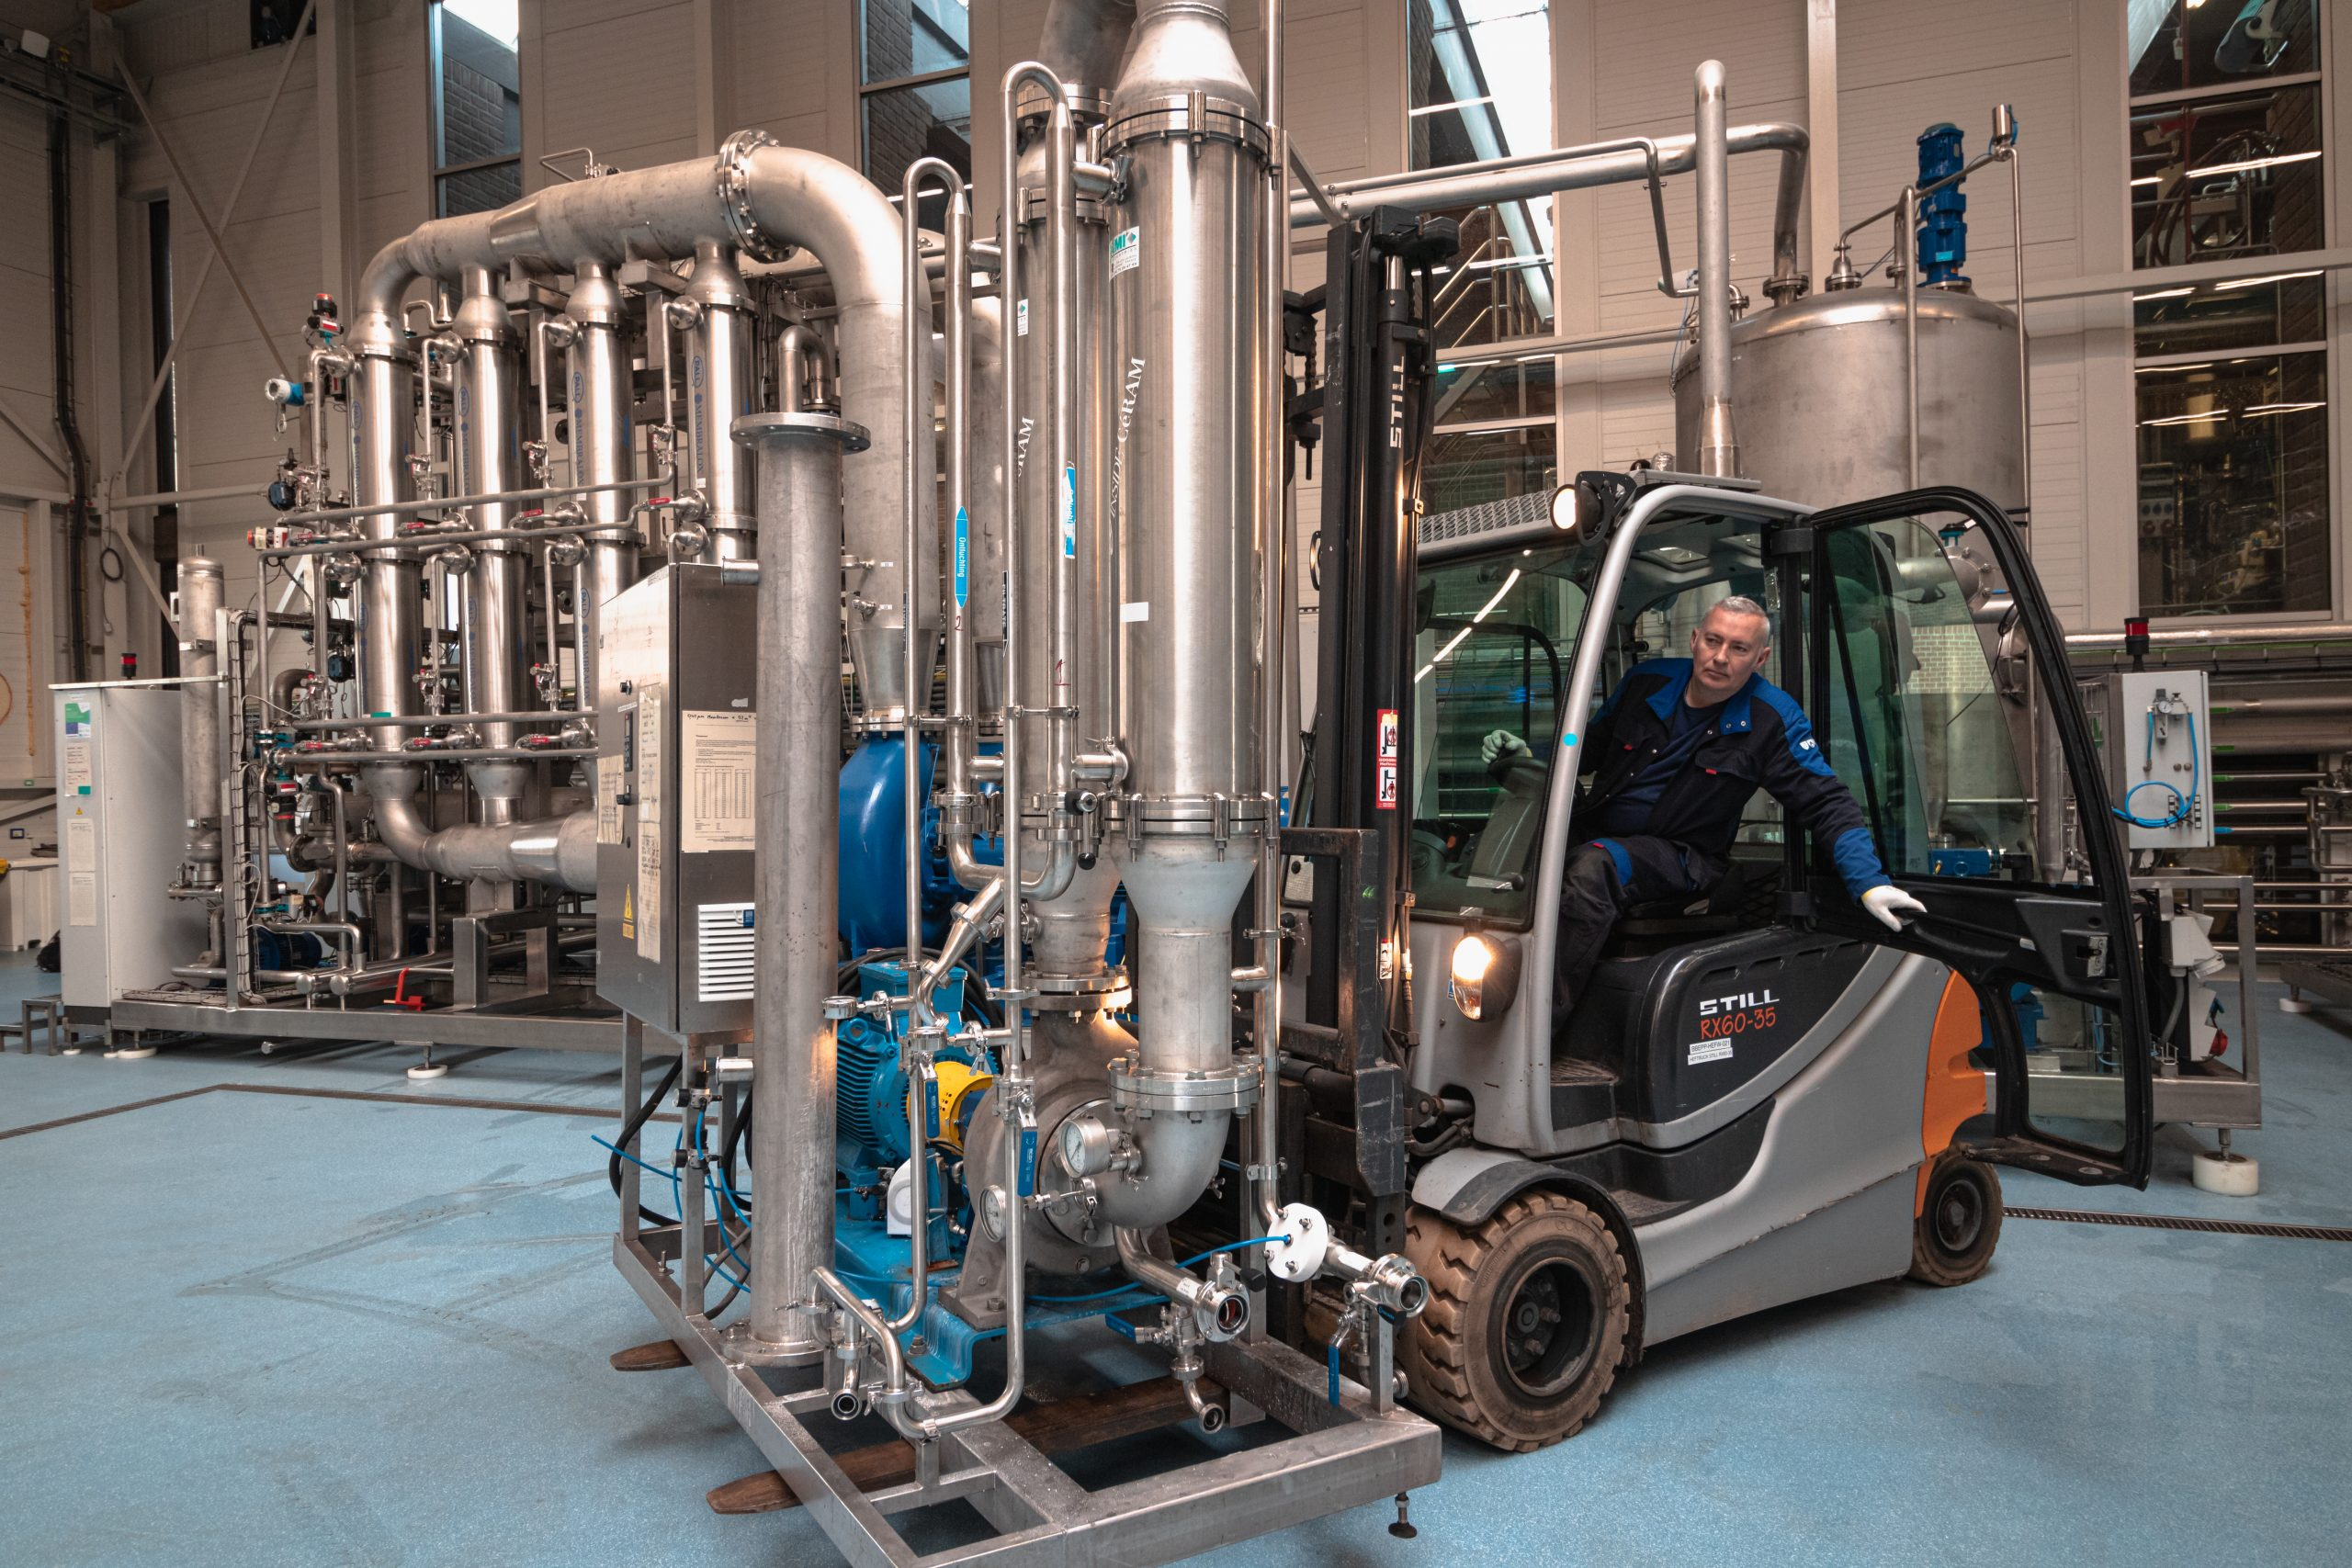 Picture: A technician is moving a ceramic filtration unit using a forklift at the Bio Base Europe Pilot Plant